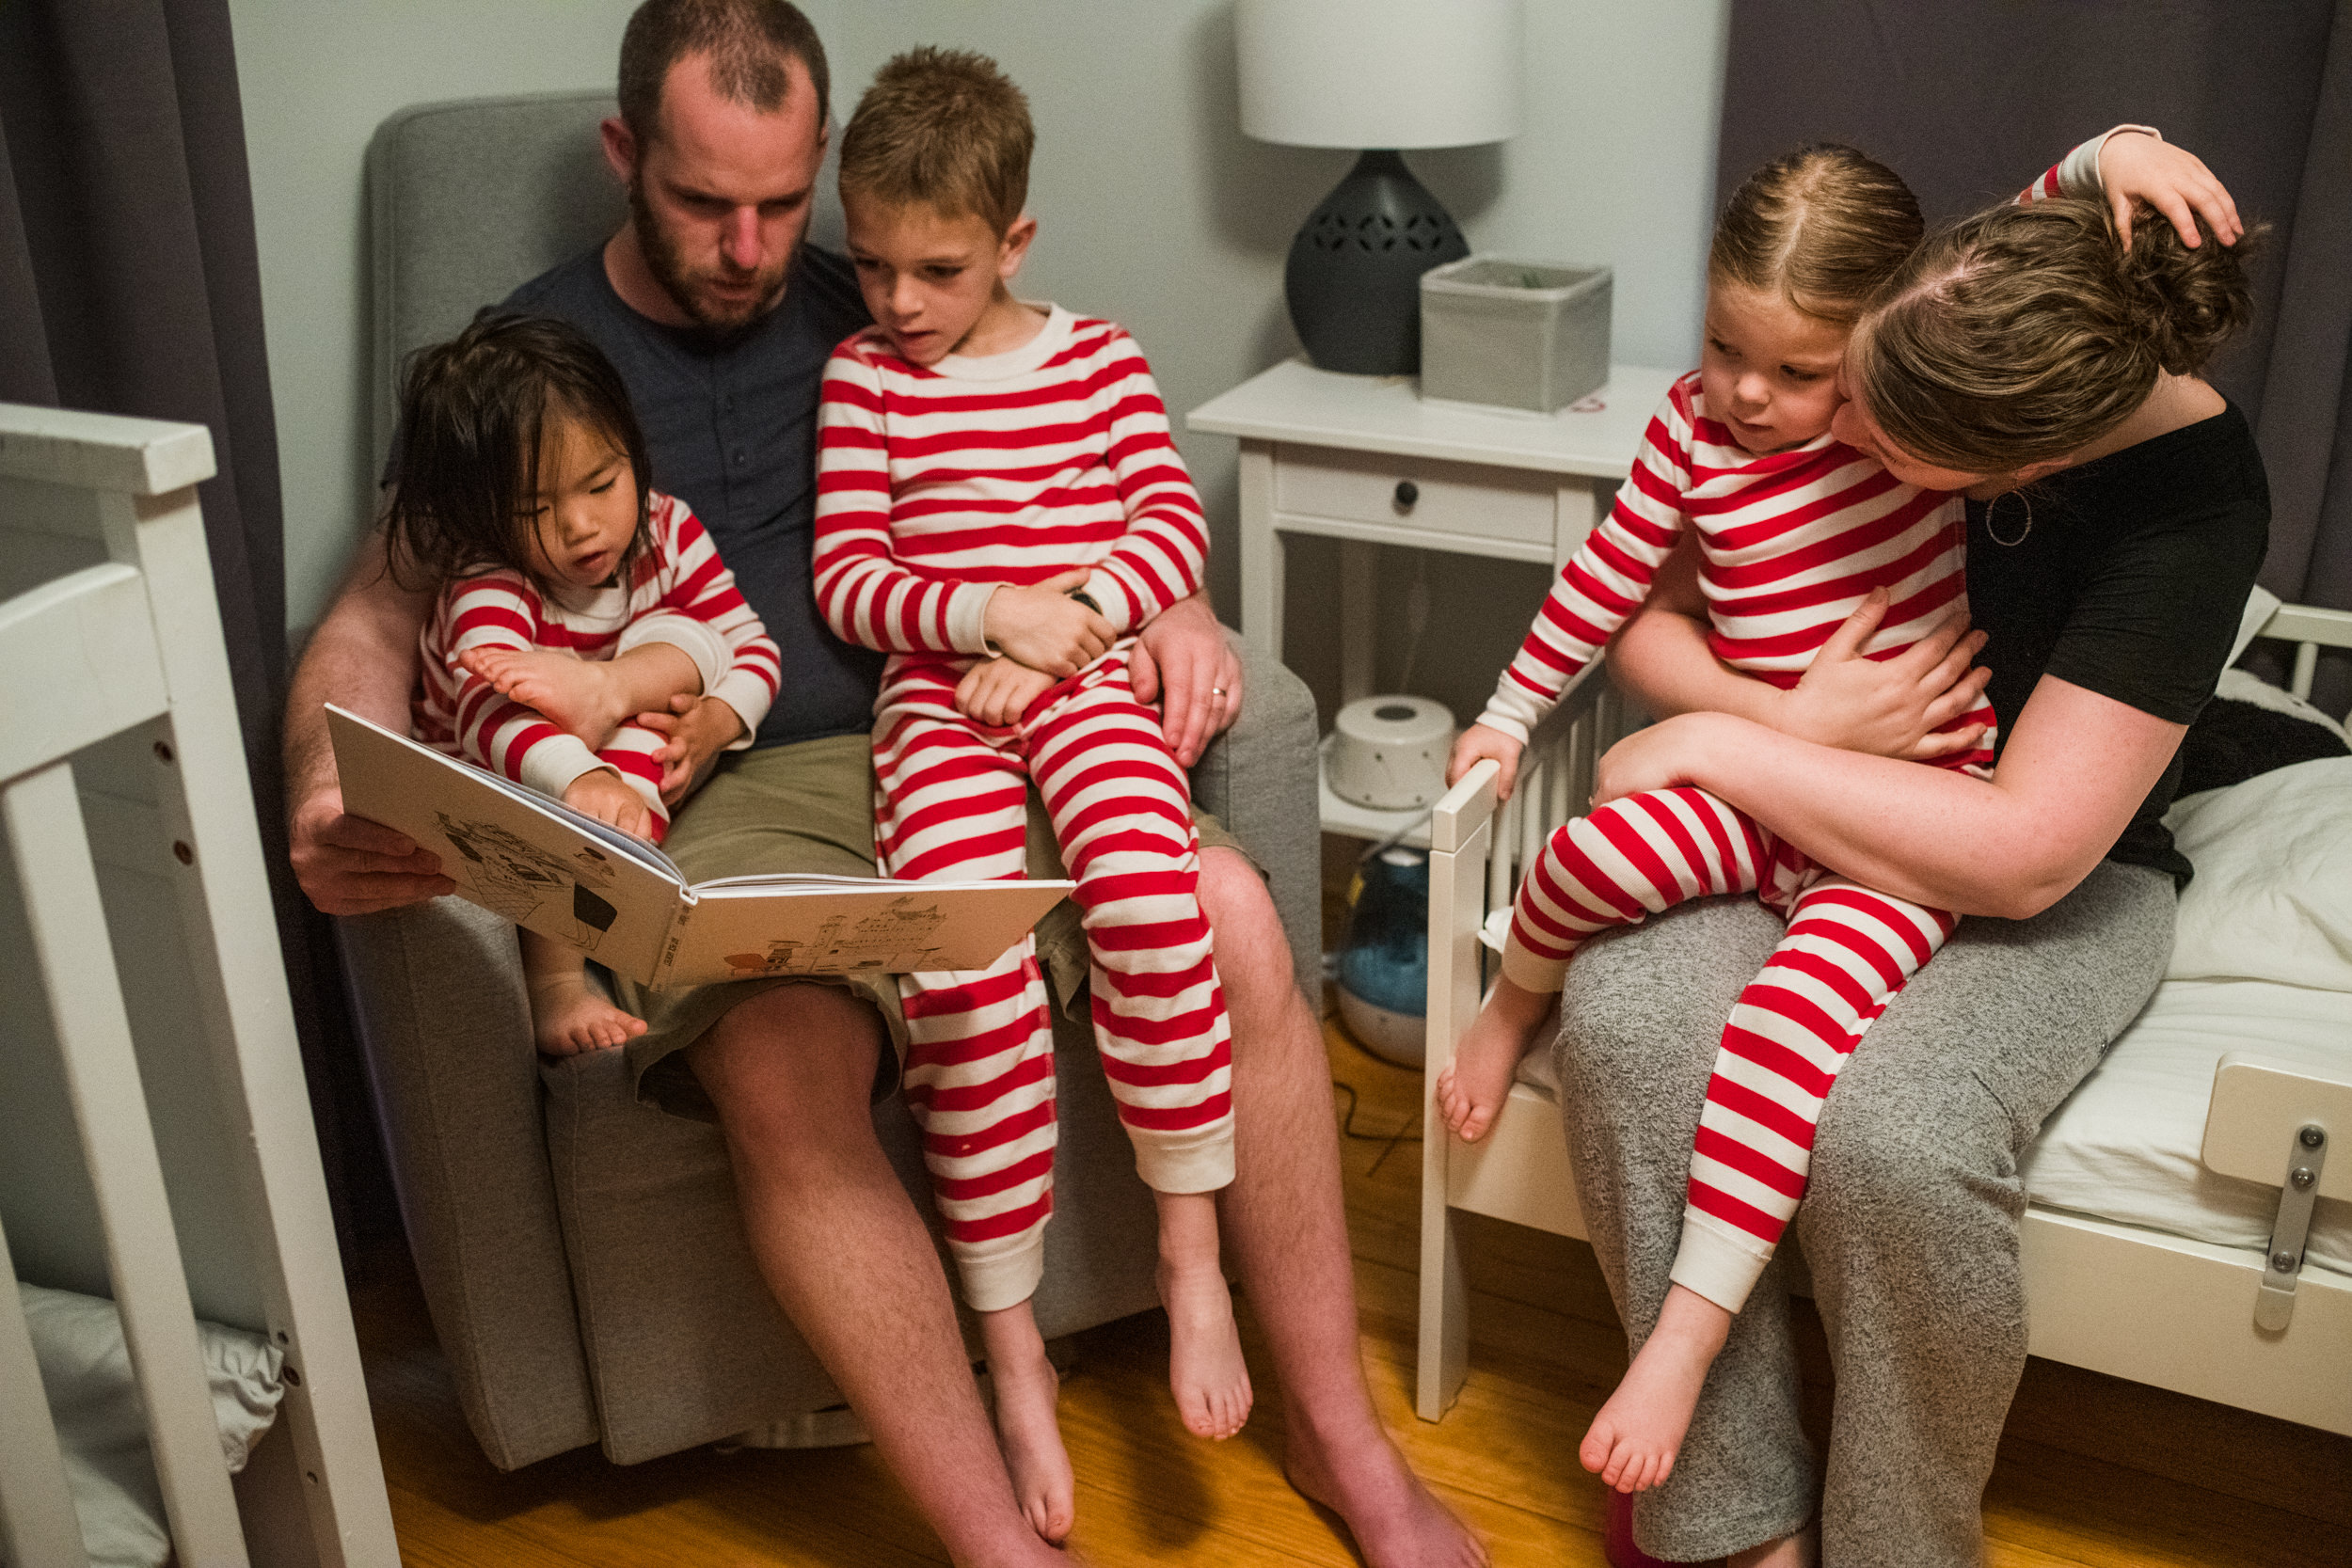 Parents are cuddling with their three children while reading books before bed.